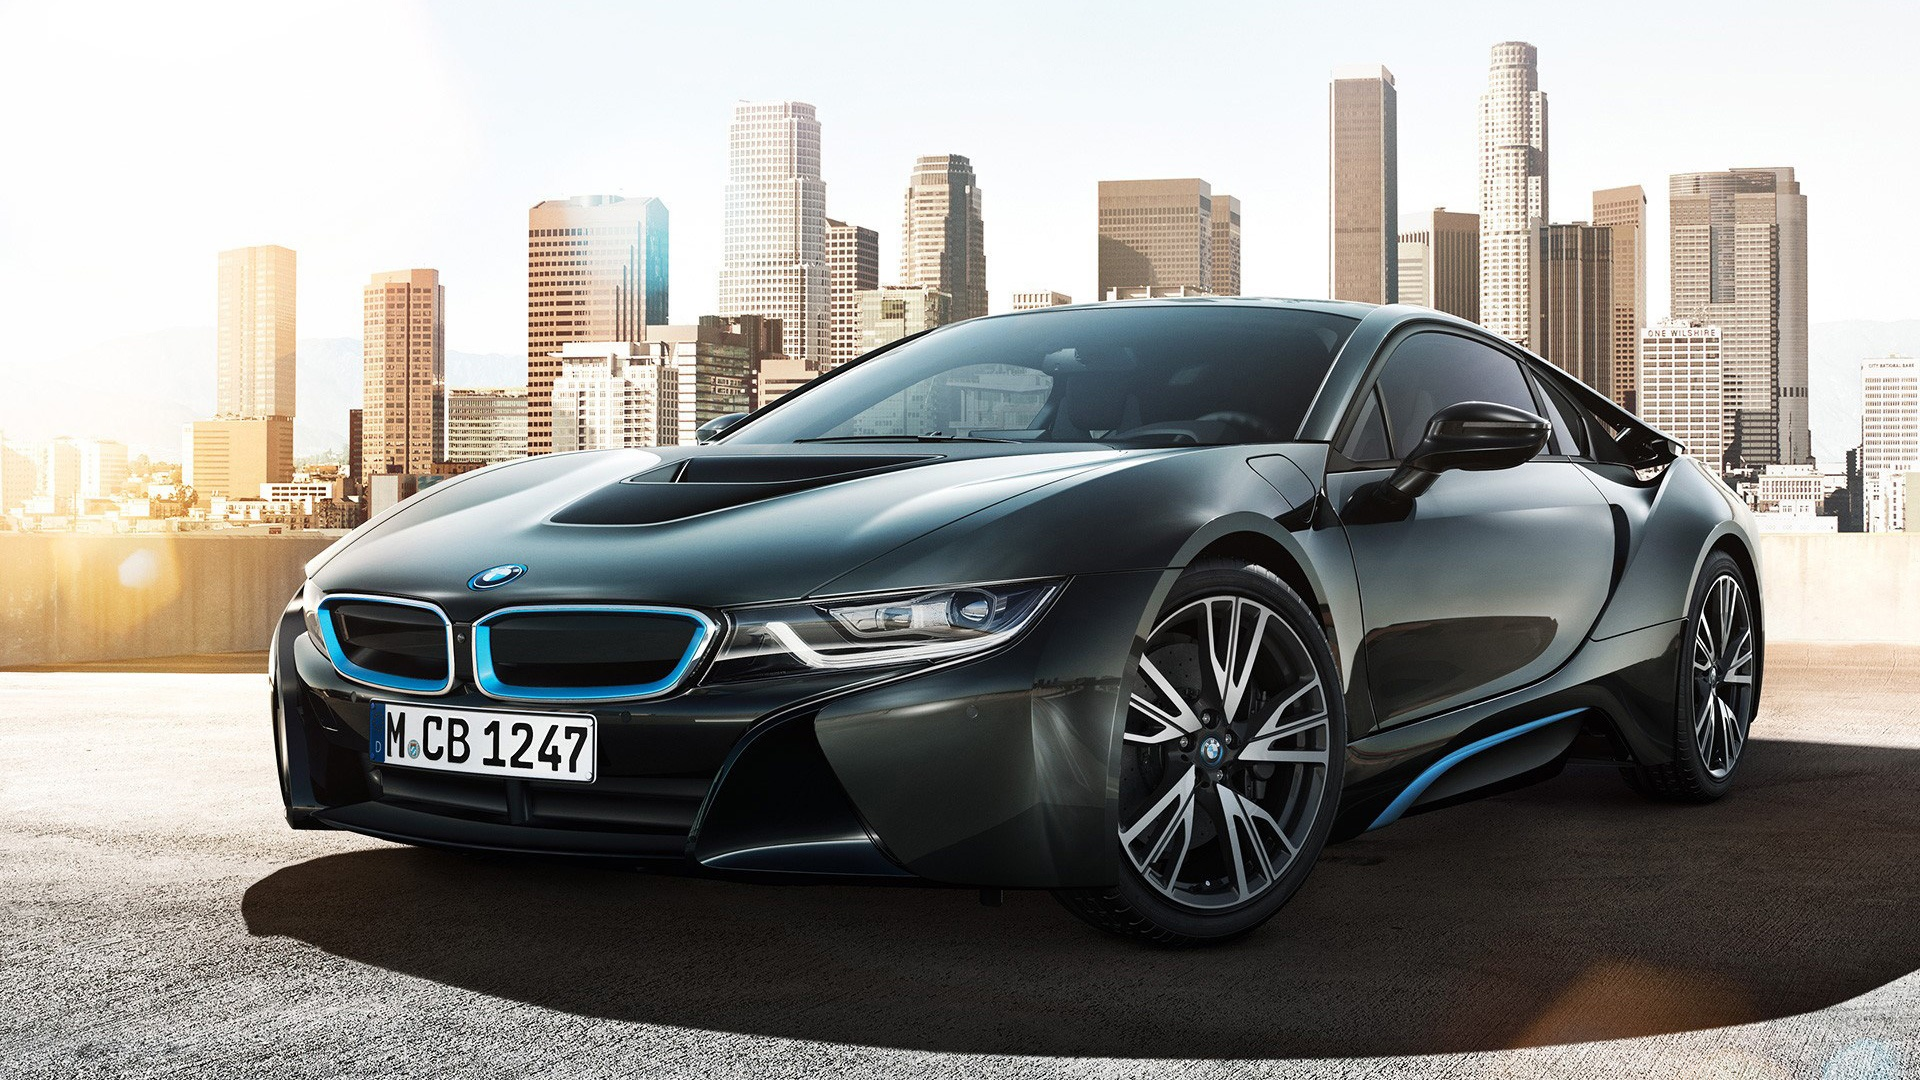 1920x1080 - BMW i3 Concept Wallpapers 23